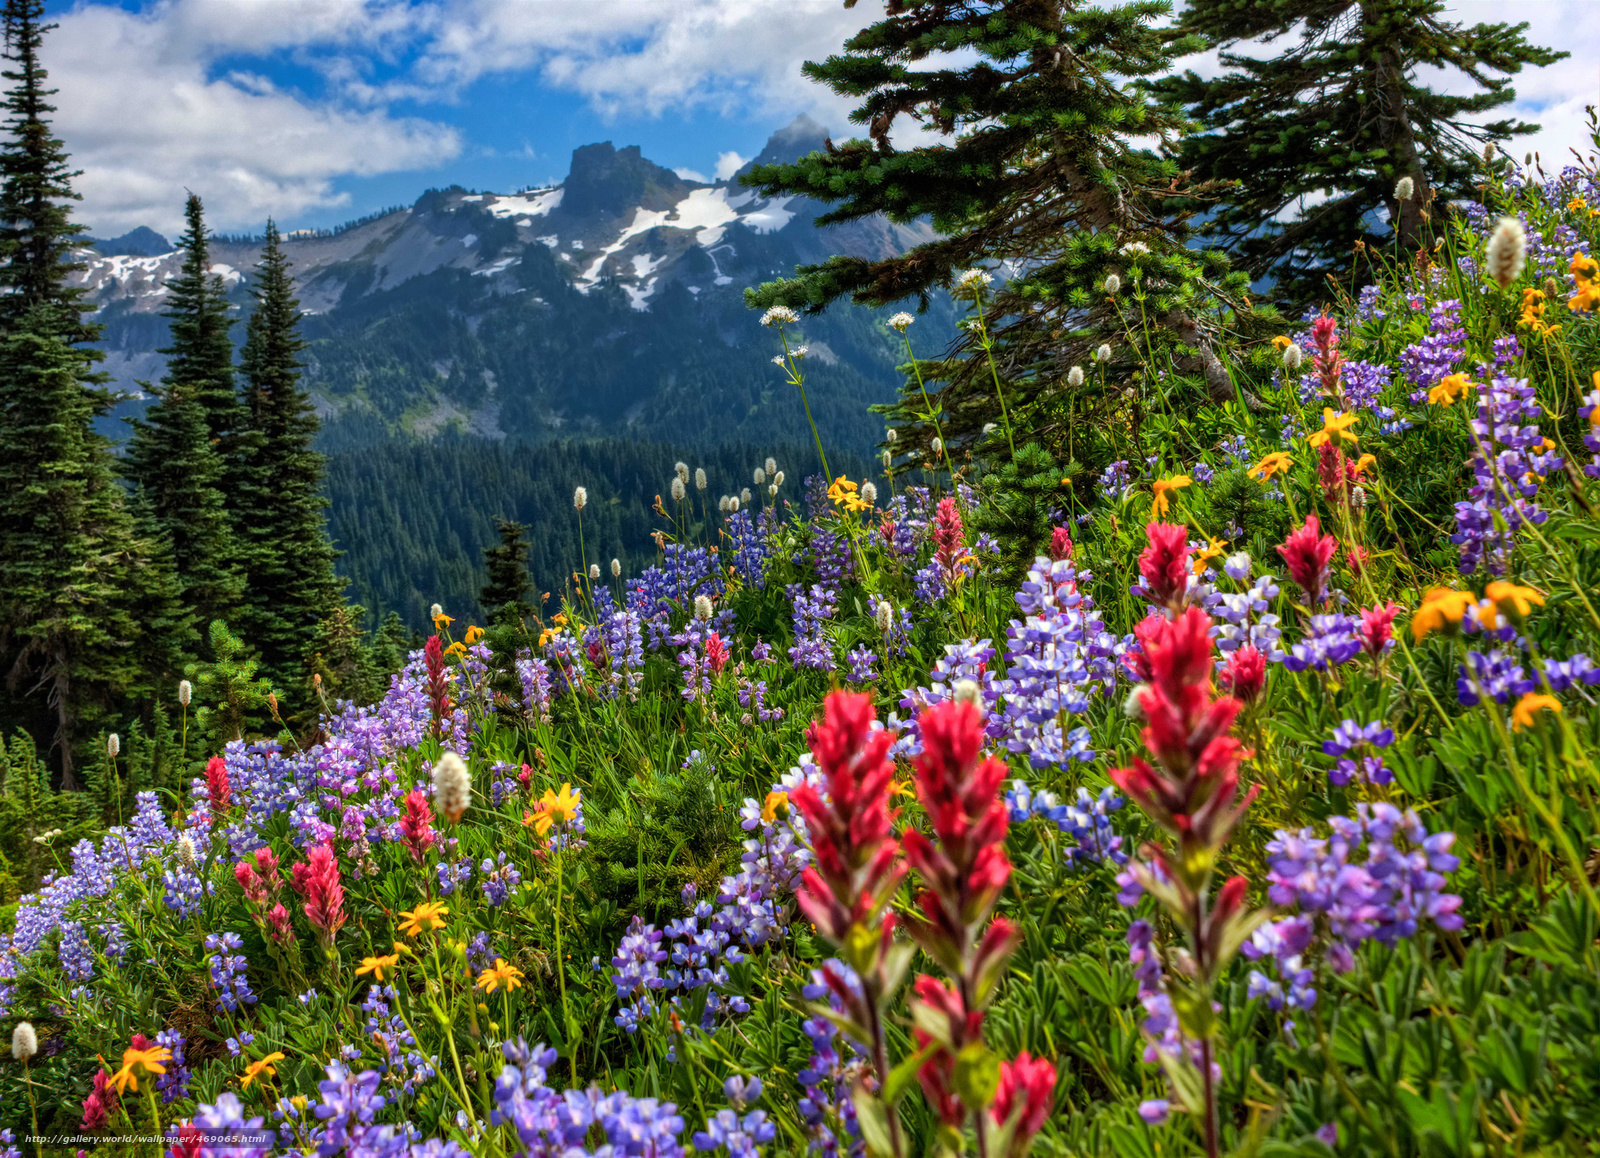 Download wallpaper mount rainier national park,  Mountains,  Flowers free desktop wallpaper in the resolution 2048x1482 — picture №469065